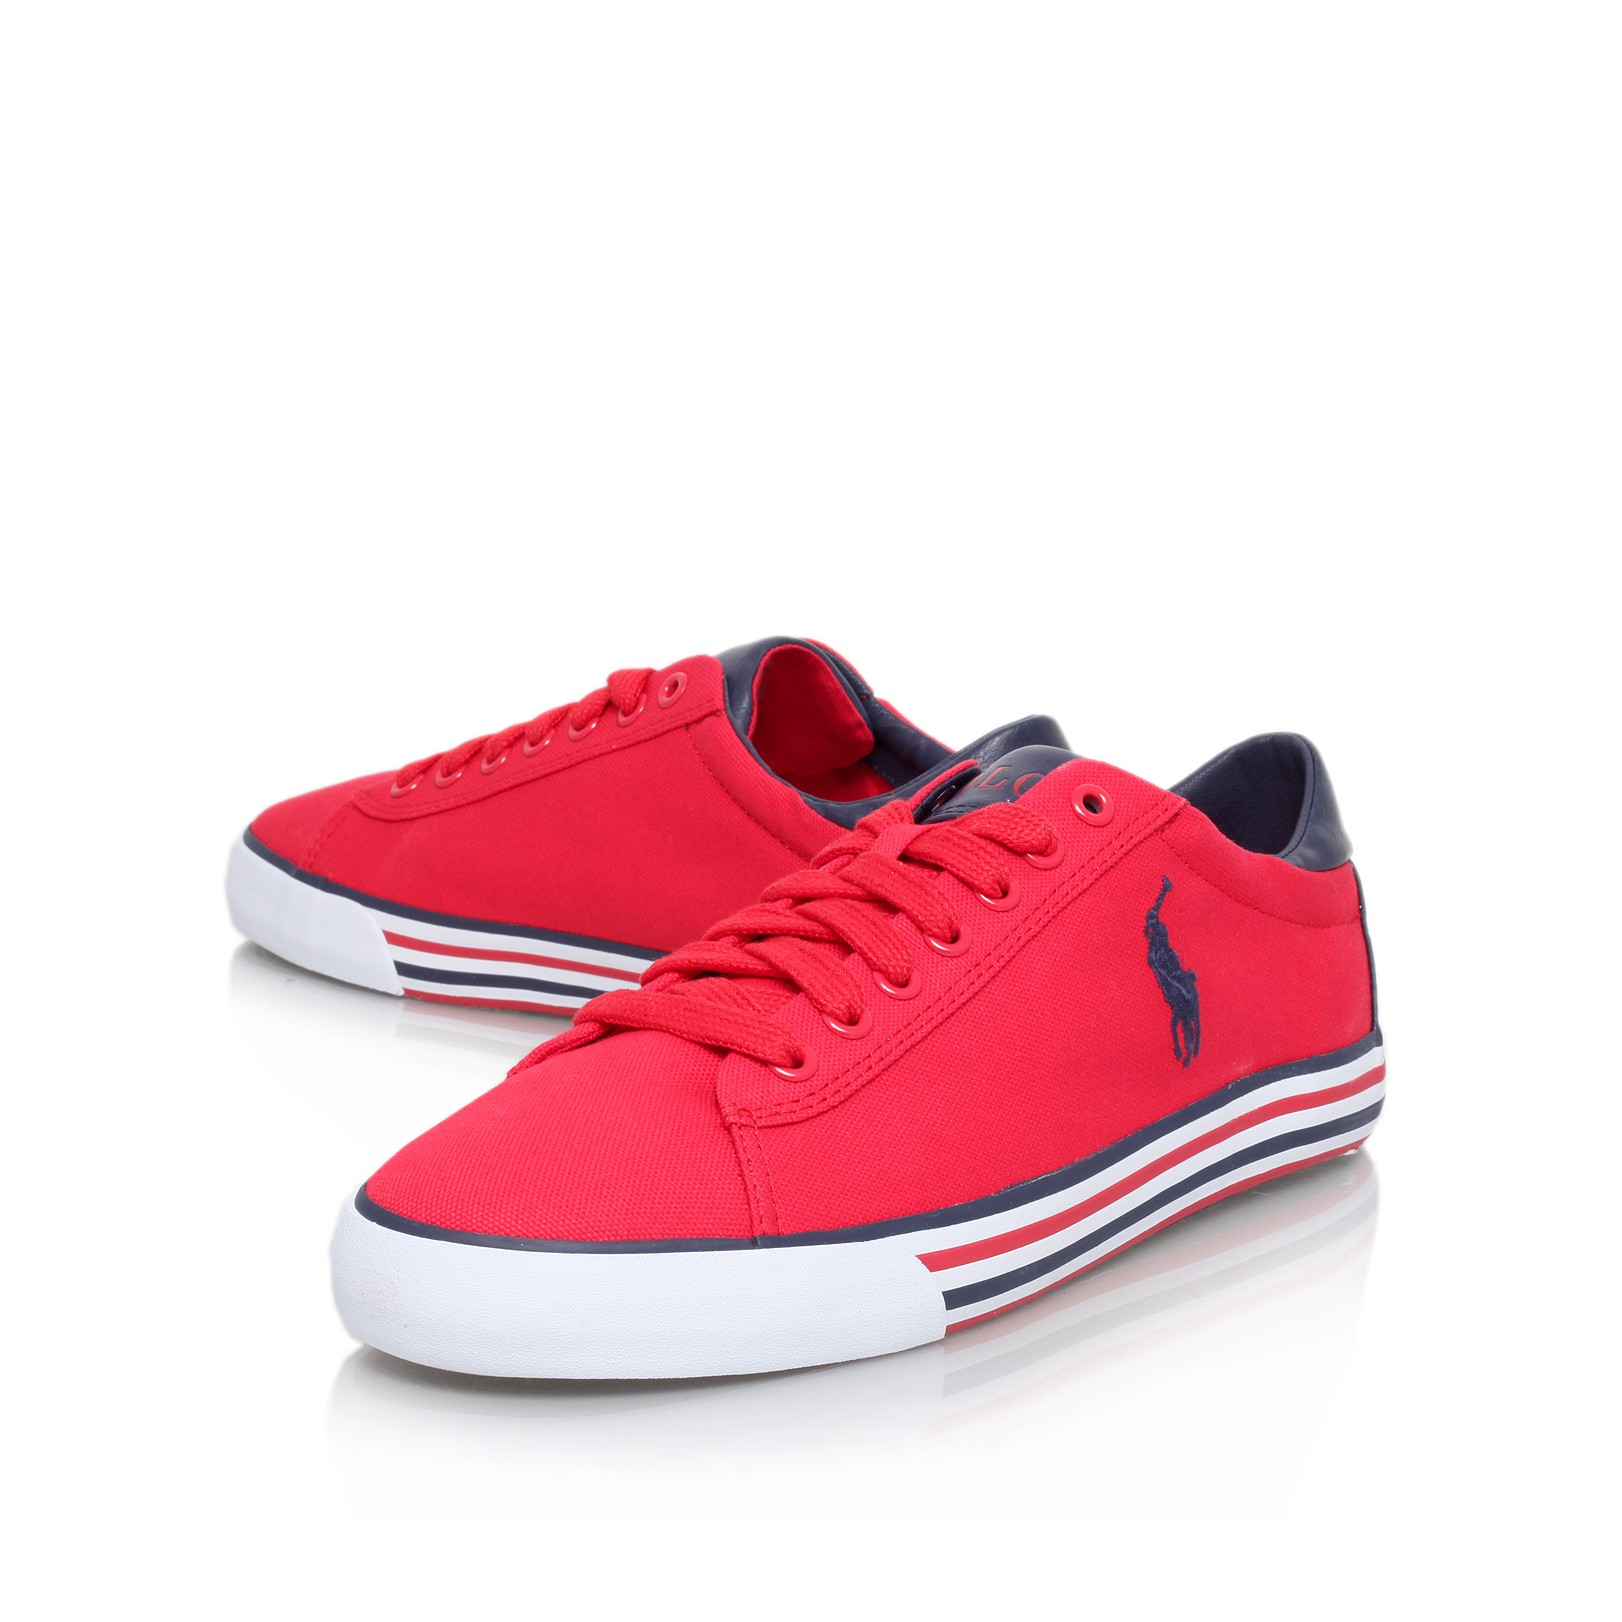 lyst polo ralph lauren harvey lo sneaker in red. Black Bedroom Furniture Sets. Home Design Ideas